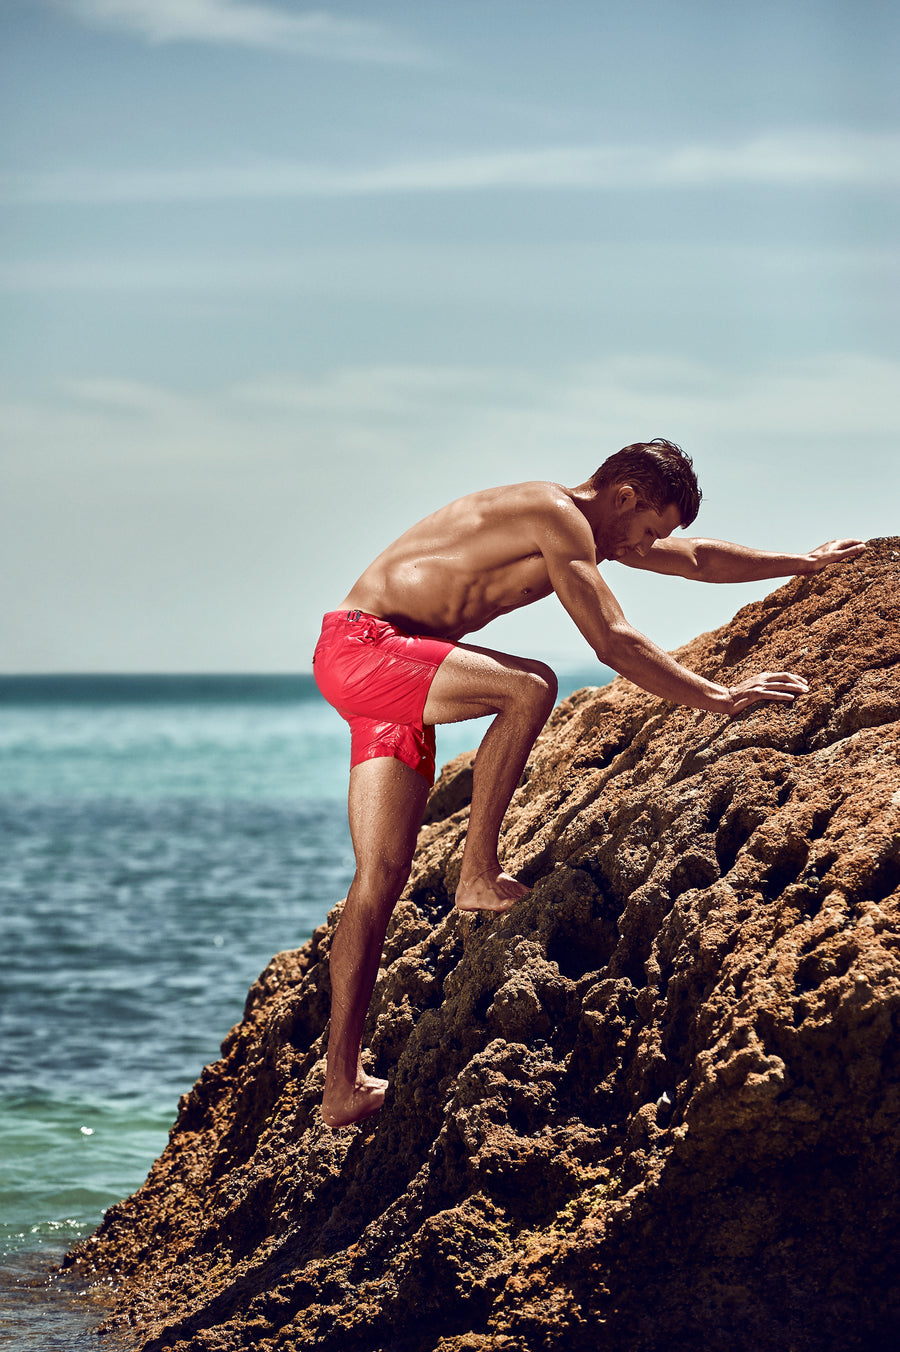 Men's swimwear for the ambitious and adventurous